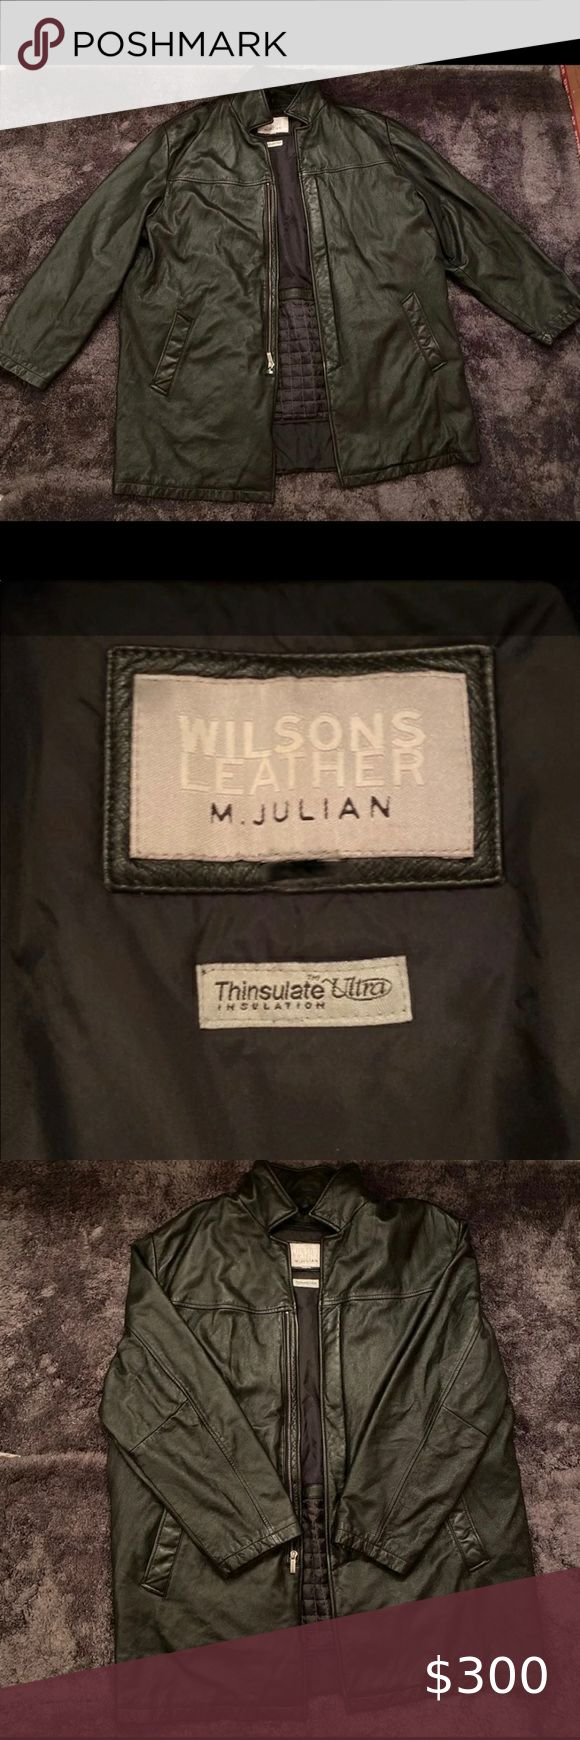 Vtg Wilsons Leather M.Julian Thinsulate Jacket in 2020